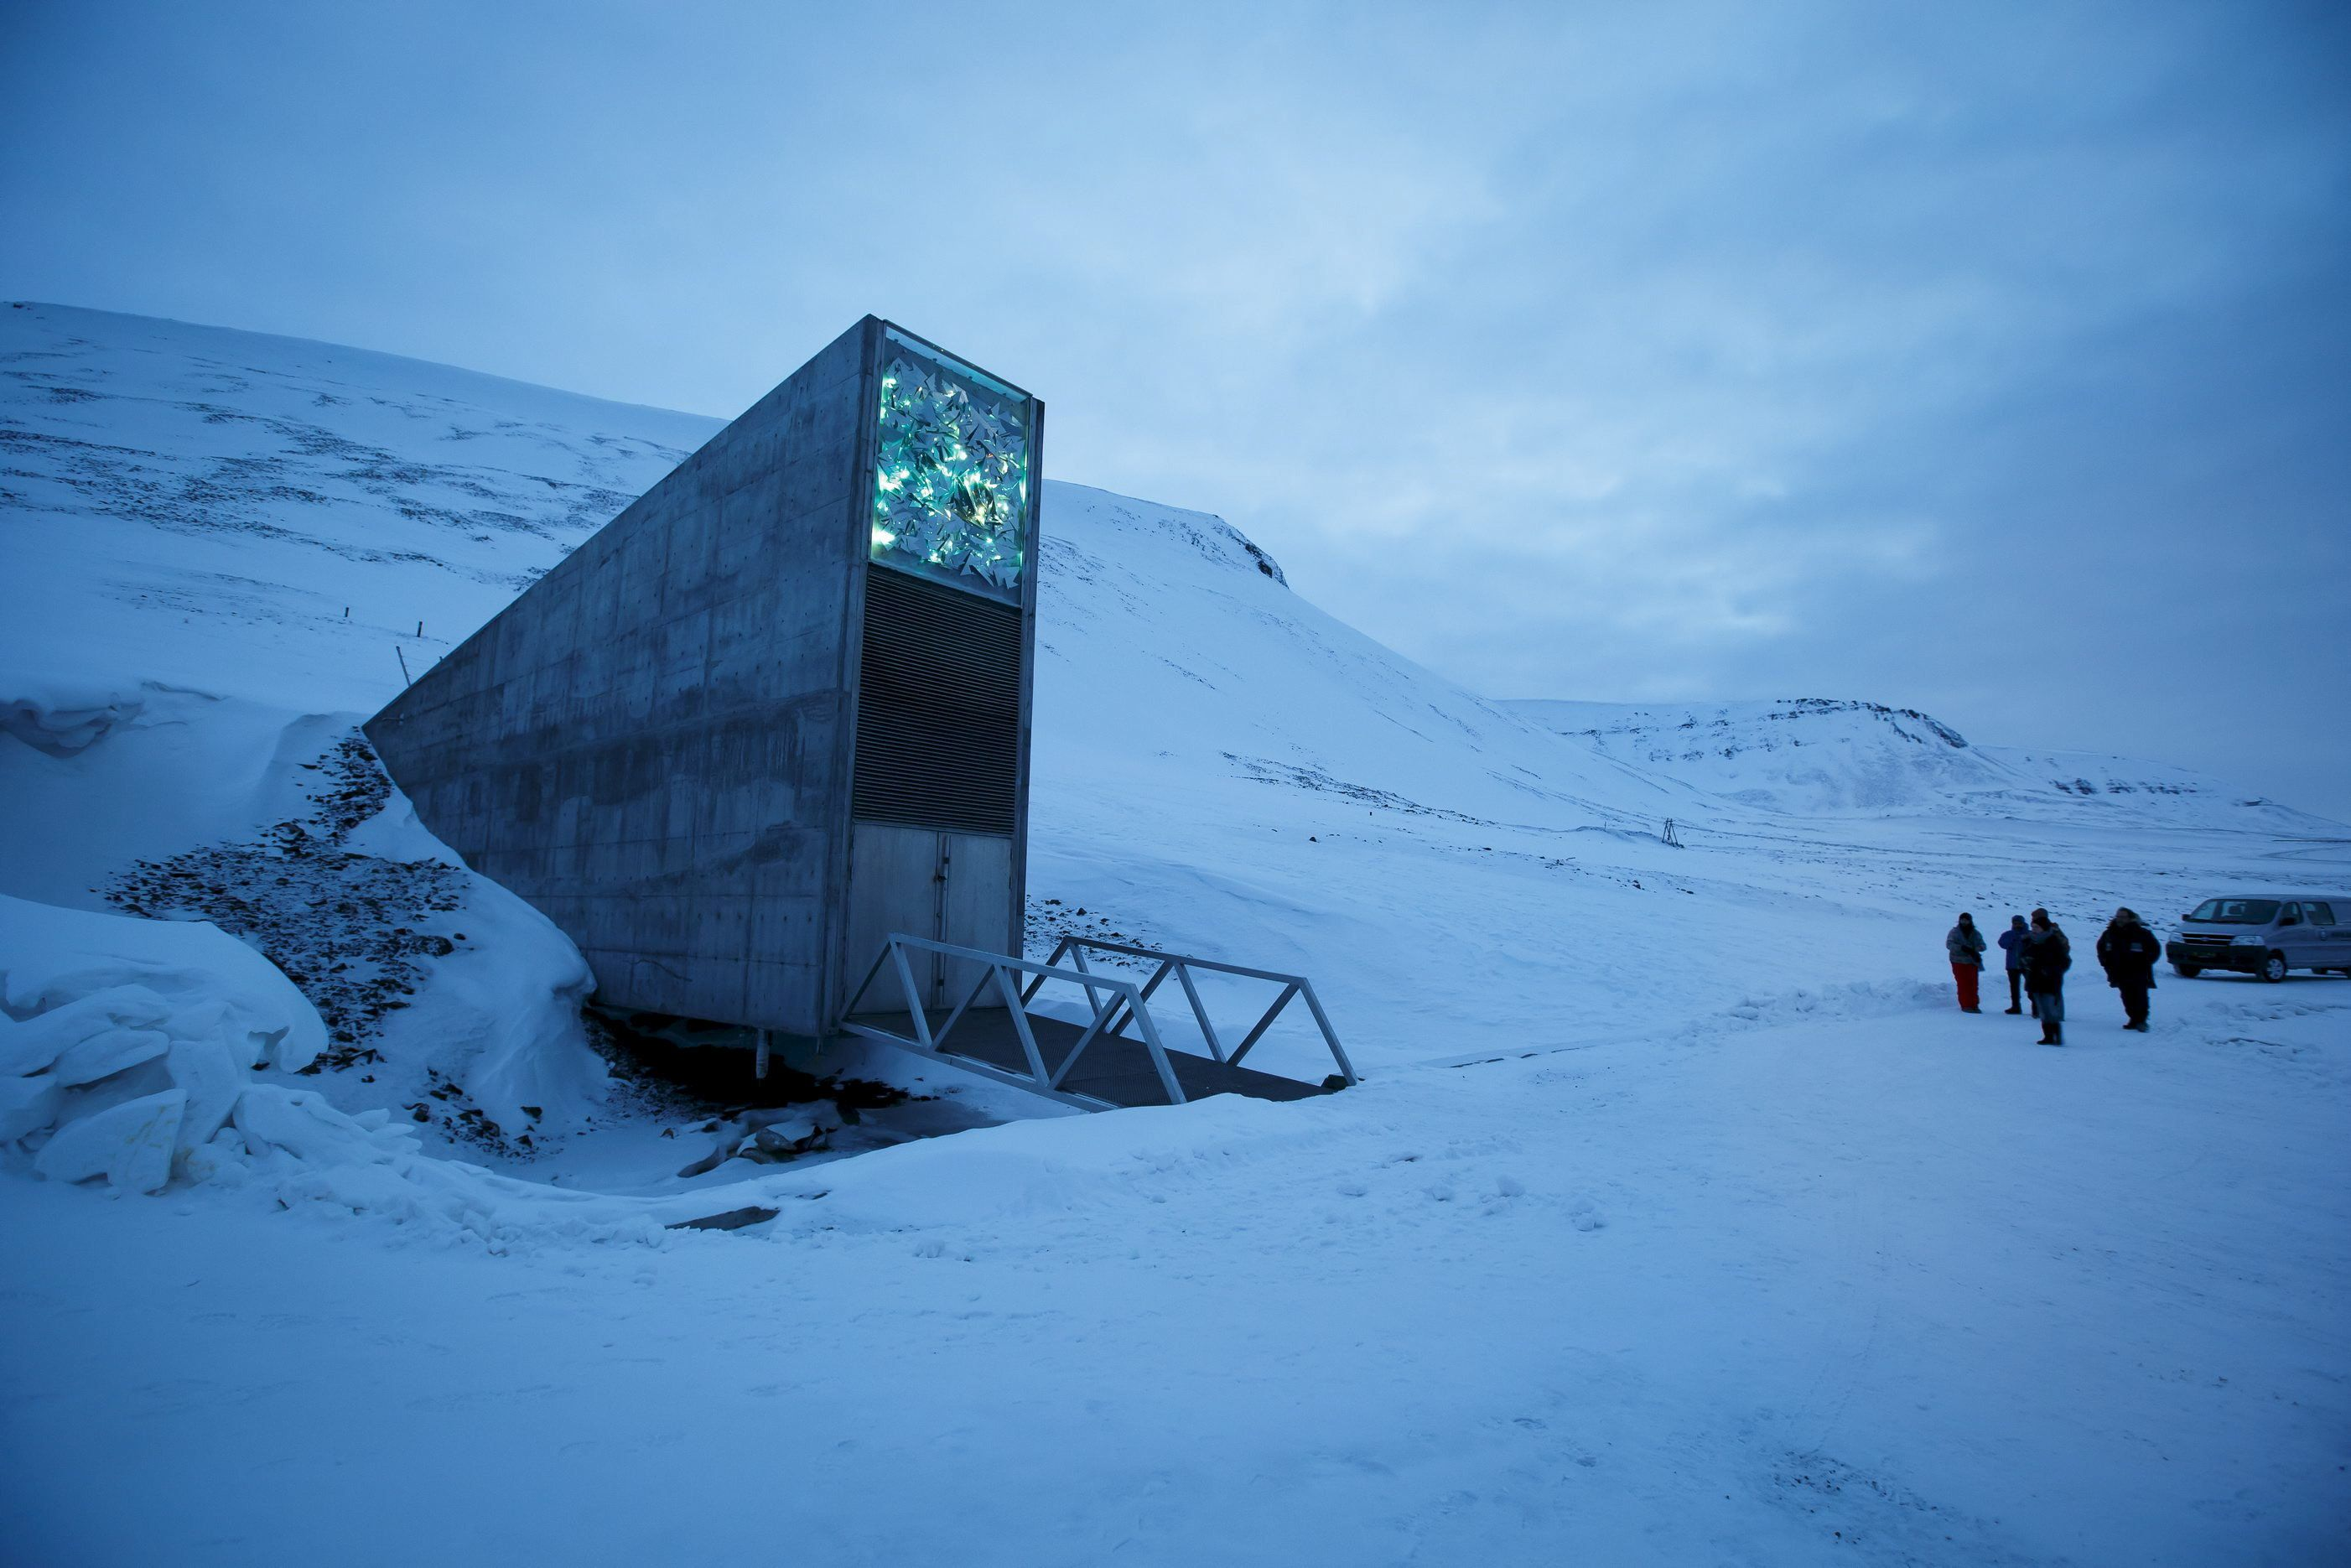 The entrance to the international gene bank Svalbard Global Seed Vault is pictured outside Longyearbyen on Spitsbergen, Norwa